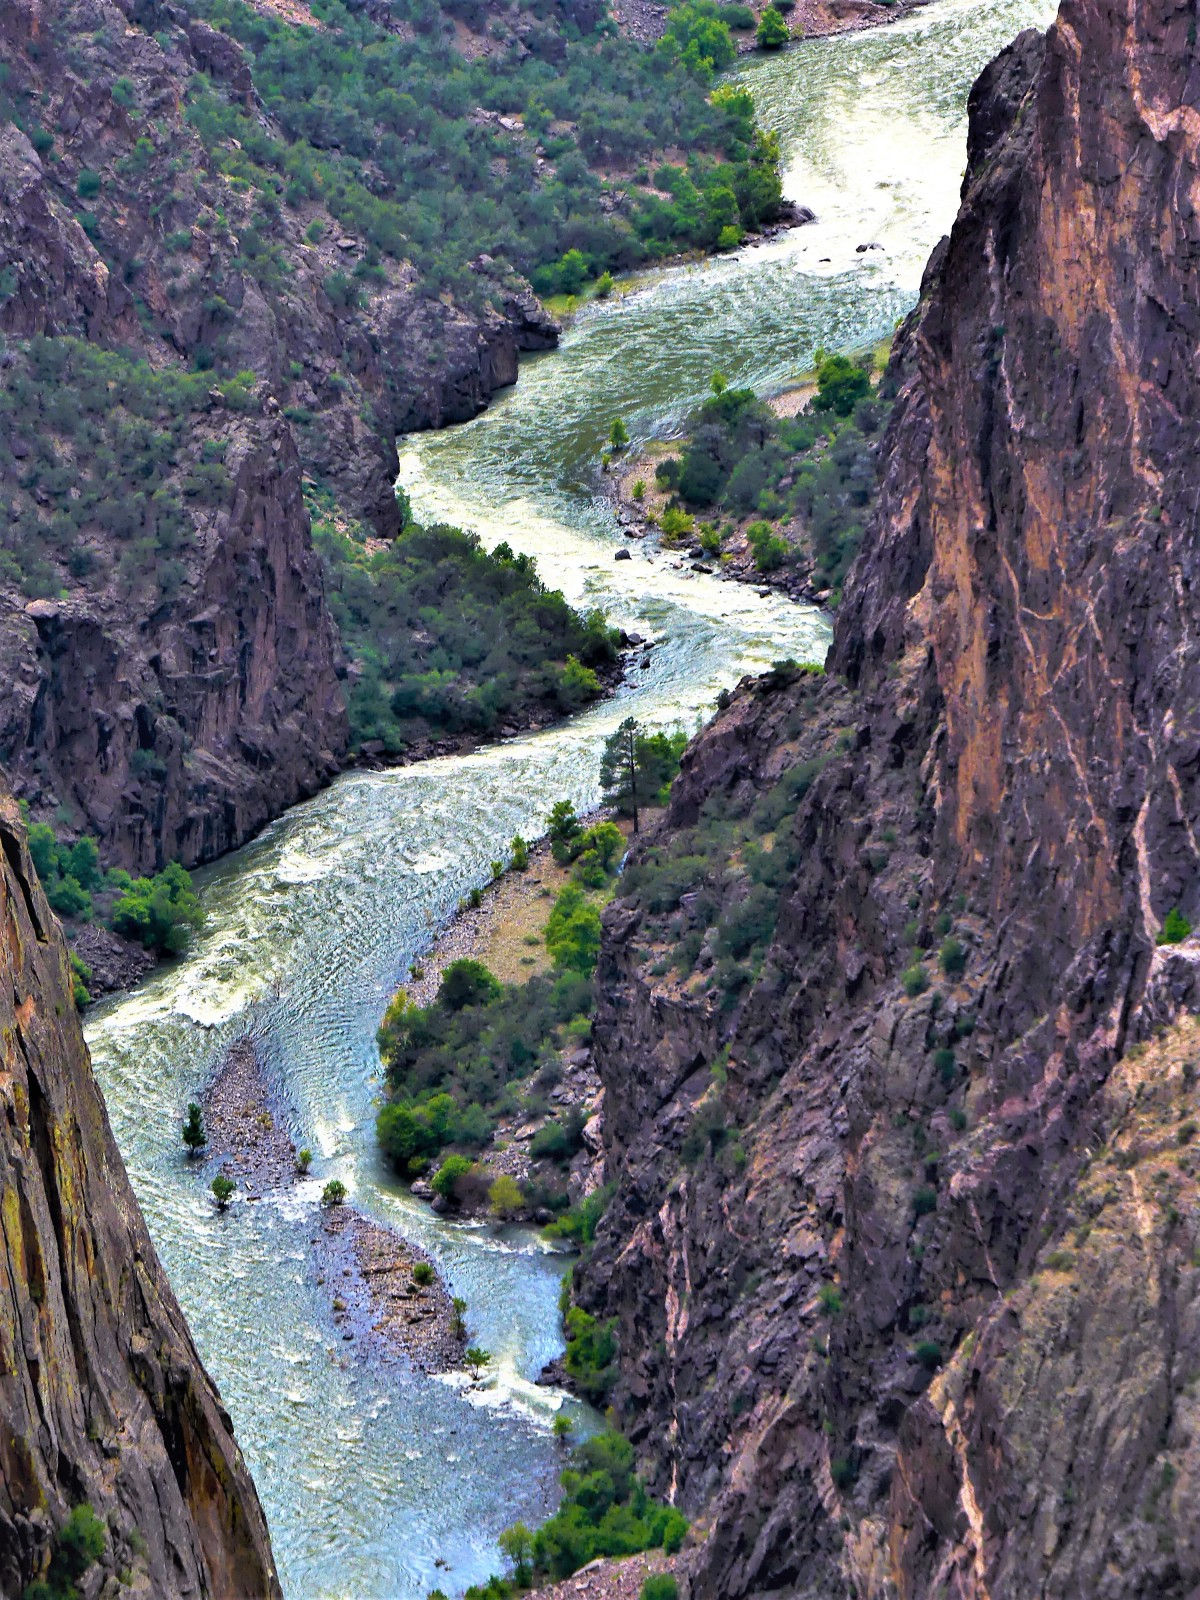 Gunnison River down the canyon